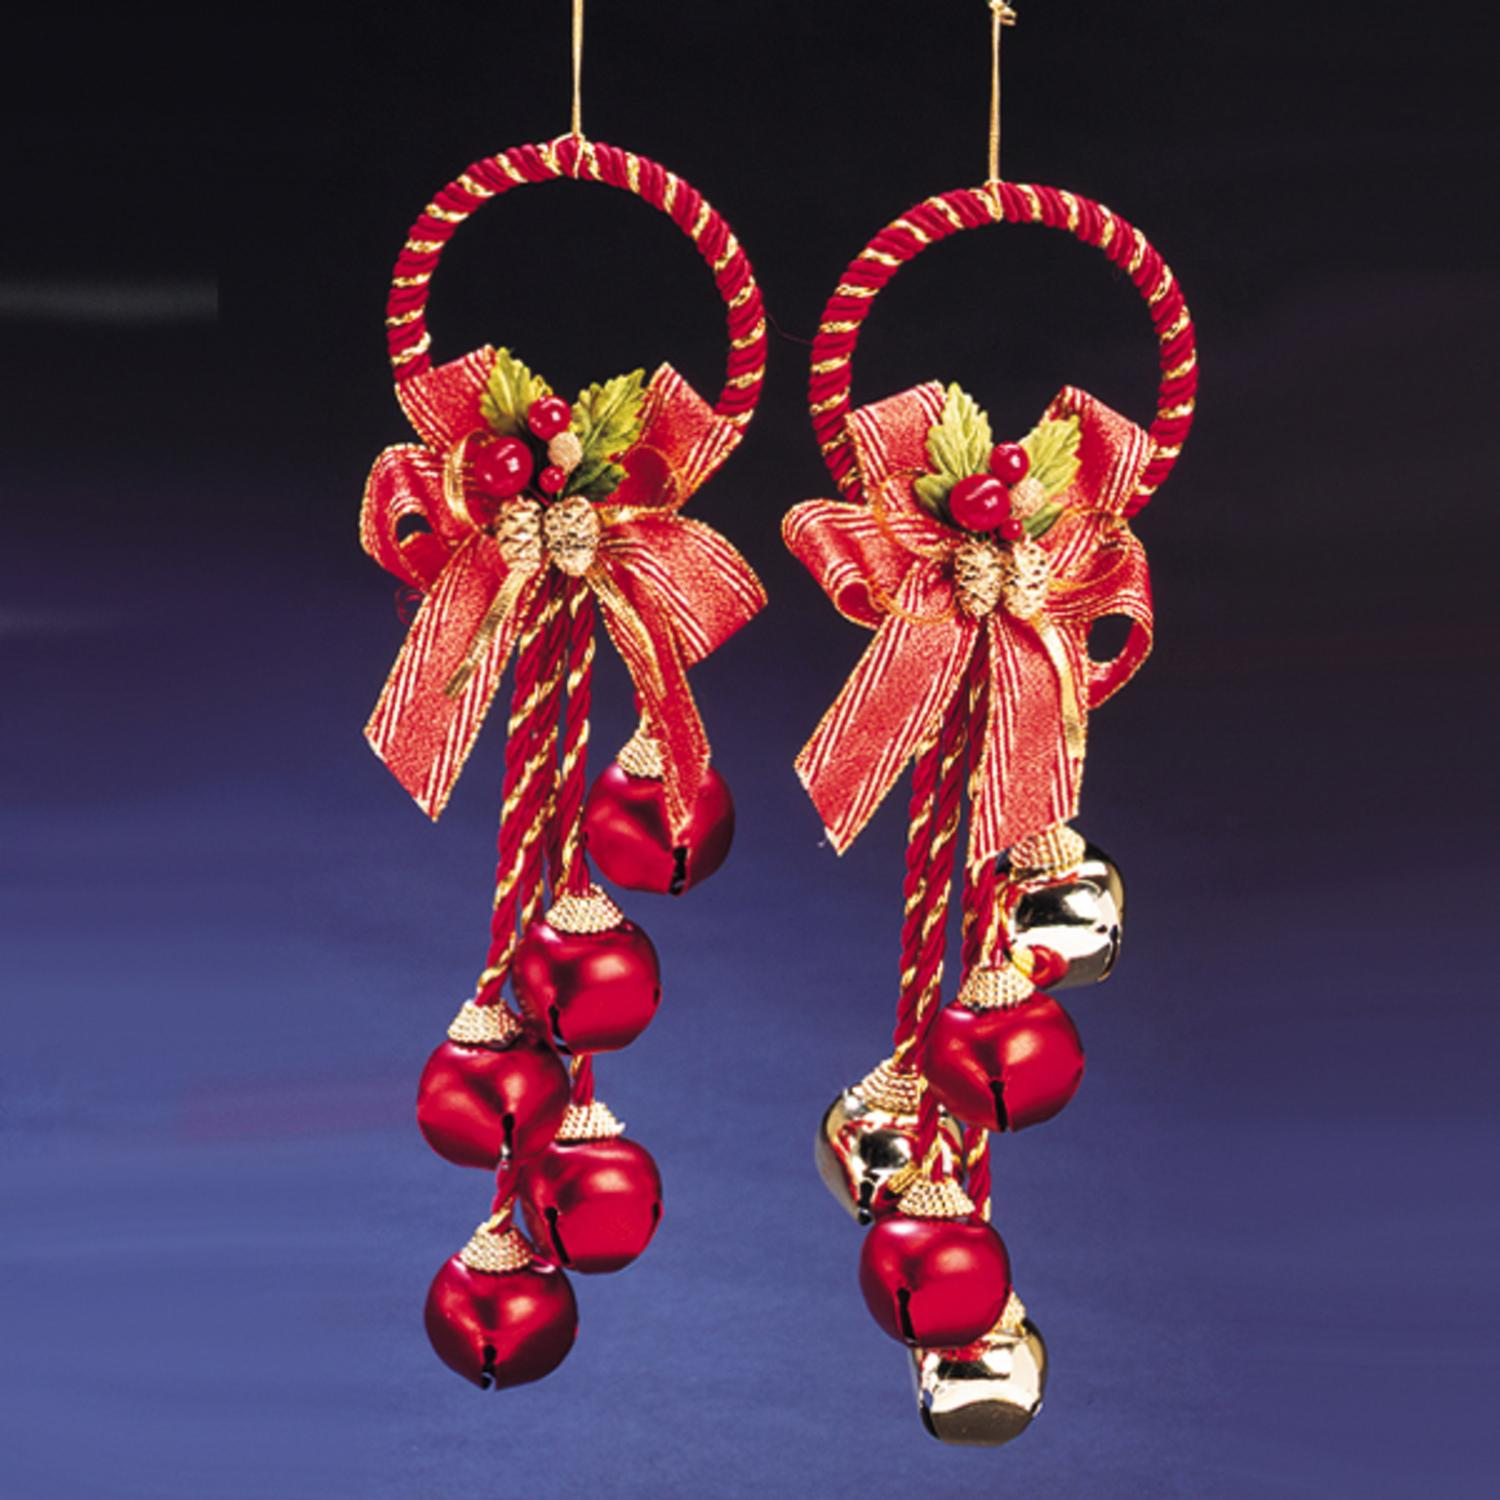 Club Pack of 12 Gold and Red Jingle Bell Cluster Christmas Decorations